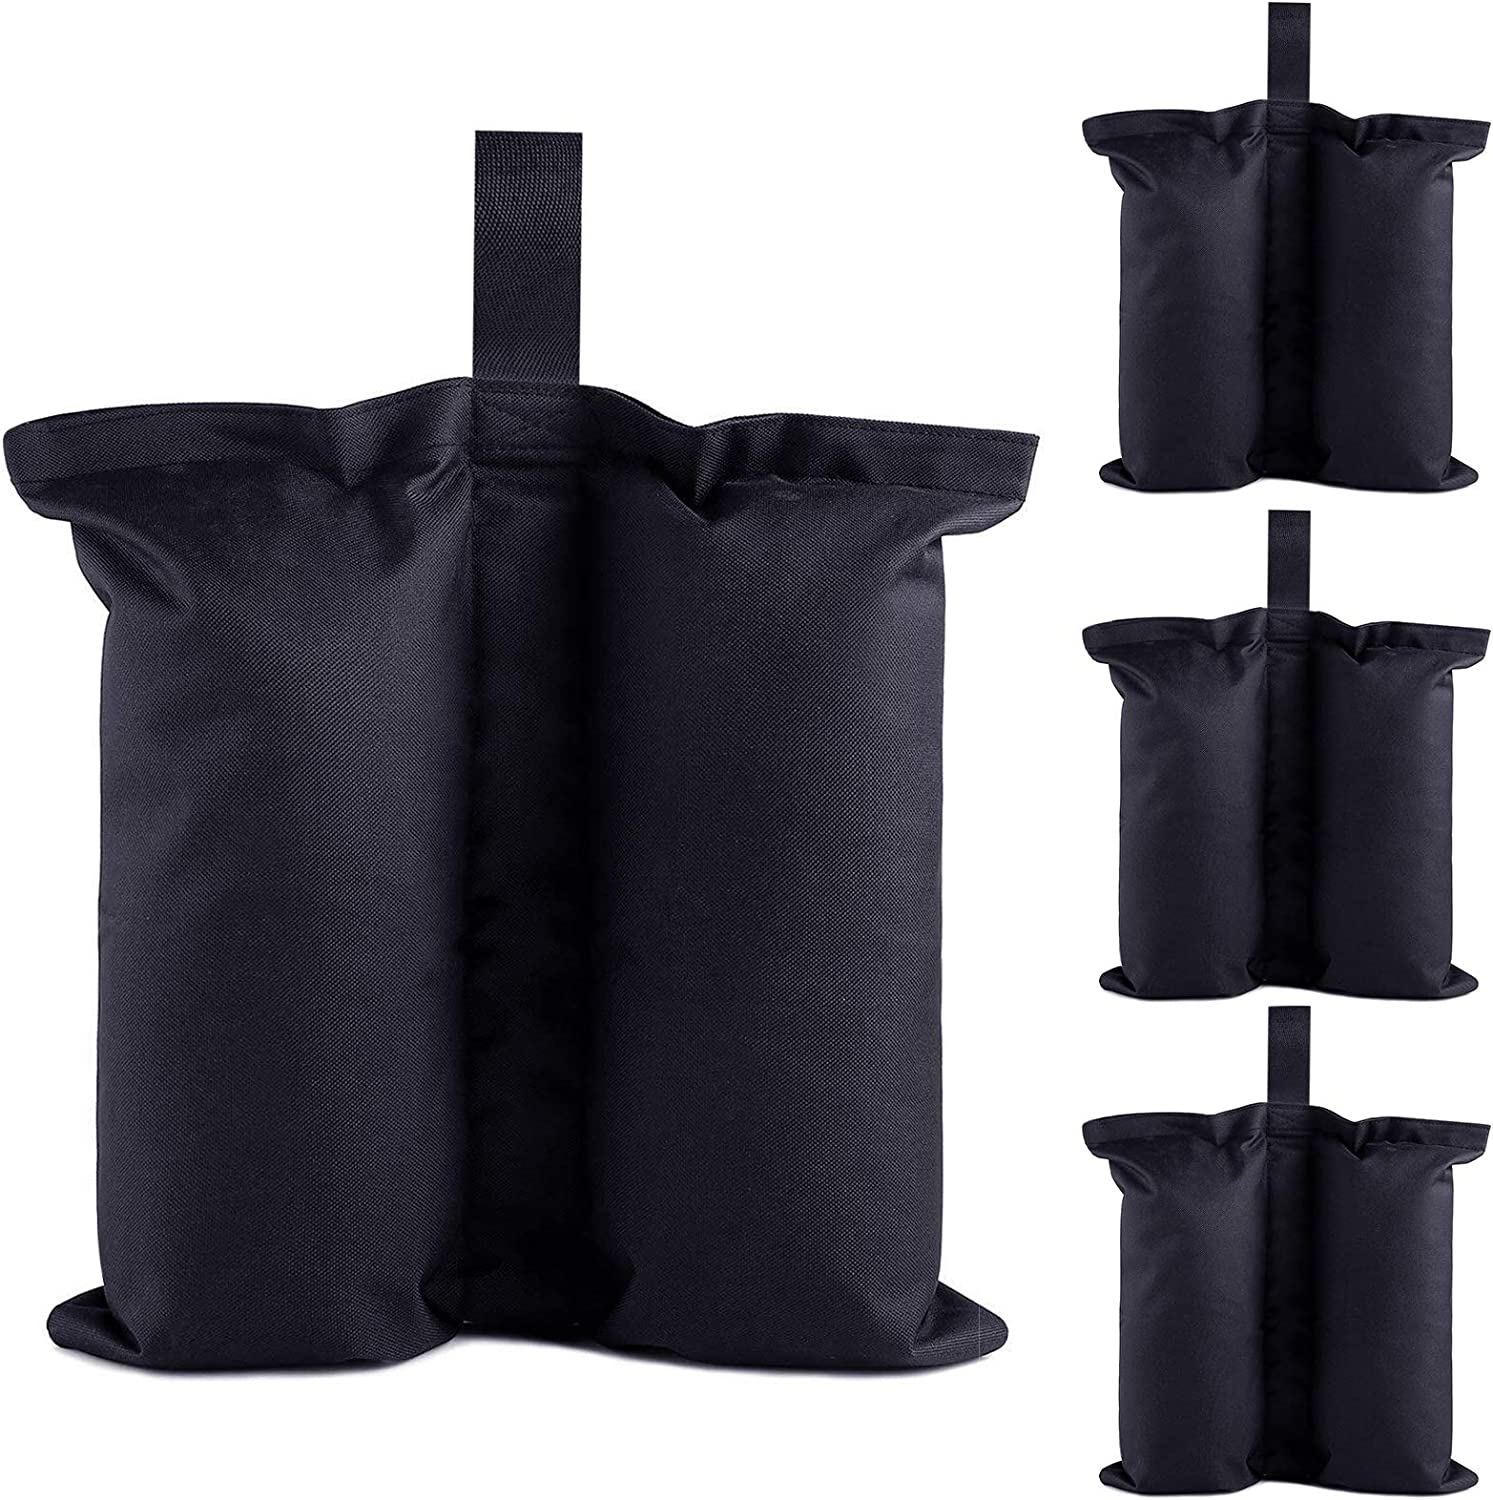 Ey Canopy Weight Bags Set of 4, Sand Bags,Industrial Grade Weights Bags for Pop up Canopy Tent, Large Patio Umbrella Leg Weights Bag for Outdoor Furniture & Sun Shelter